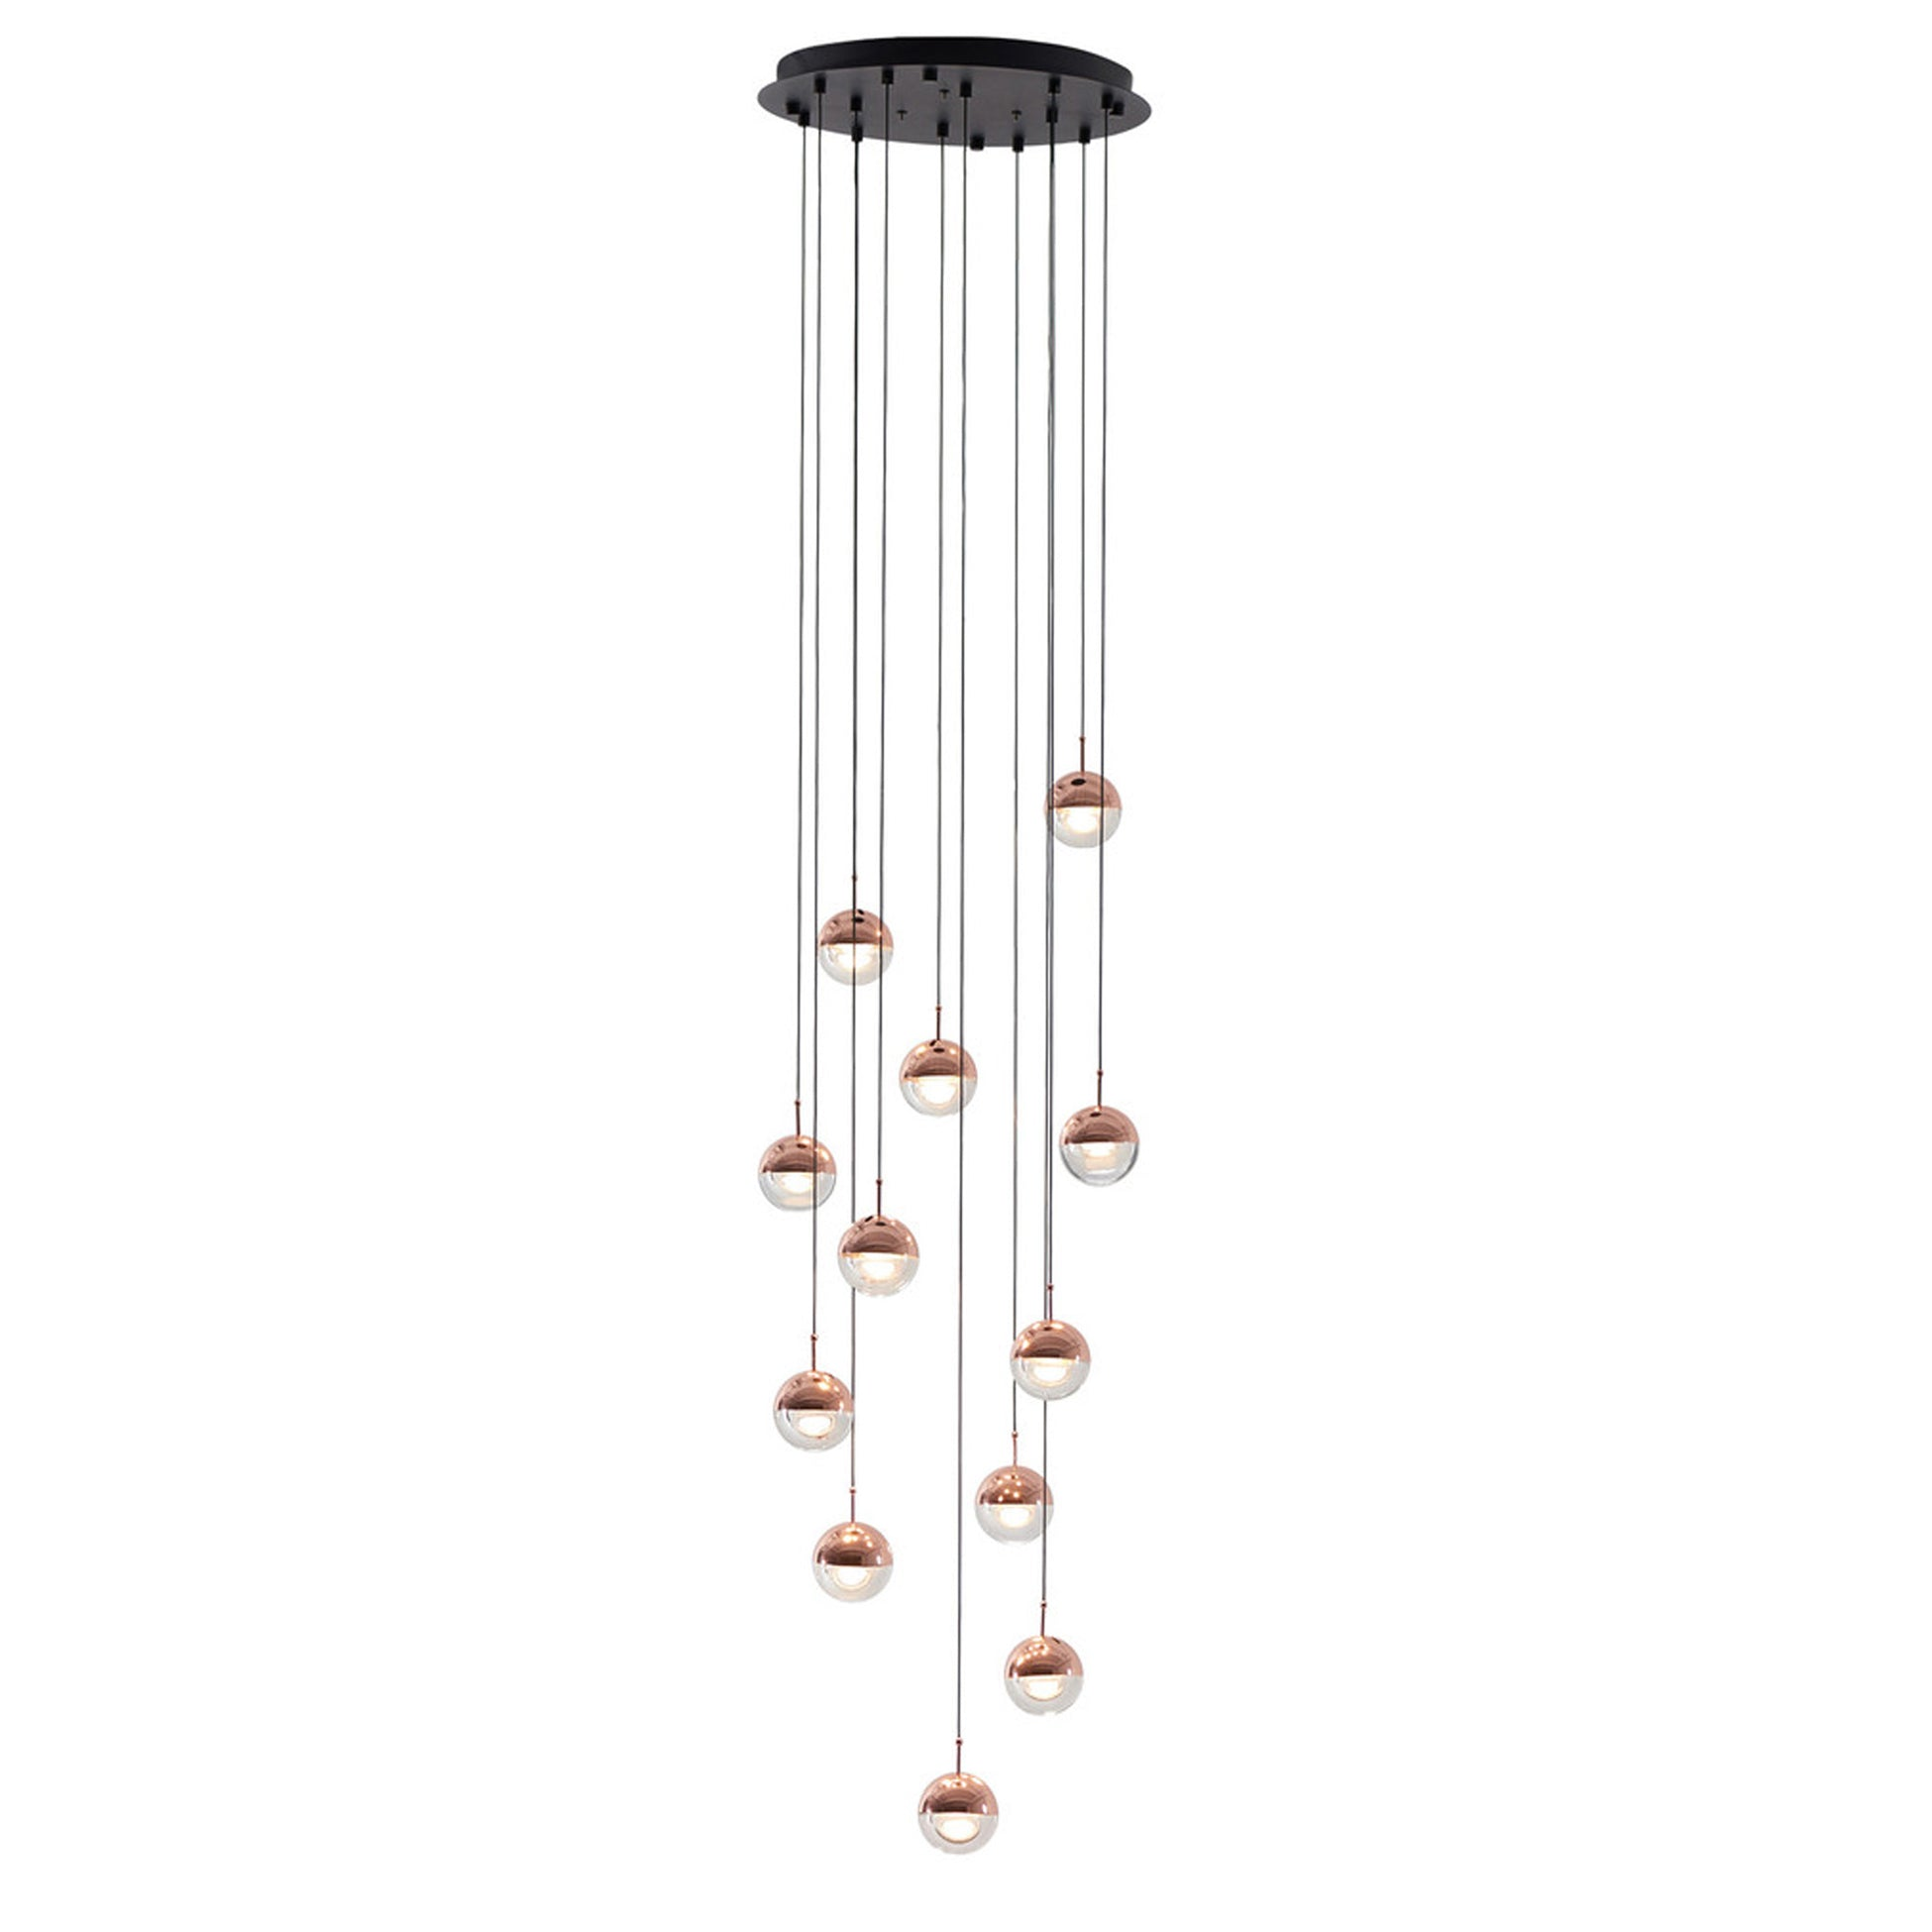 Dora 12 Light Pendant -  Copper